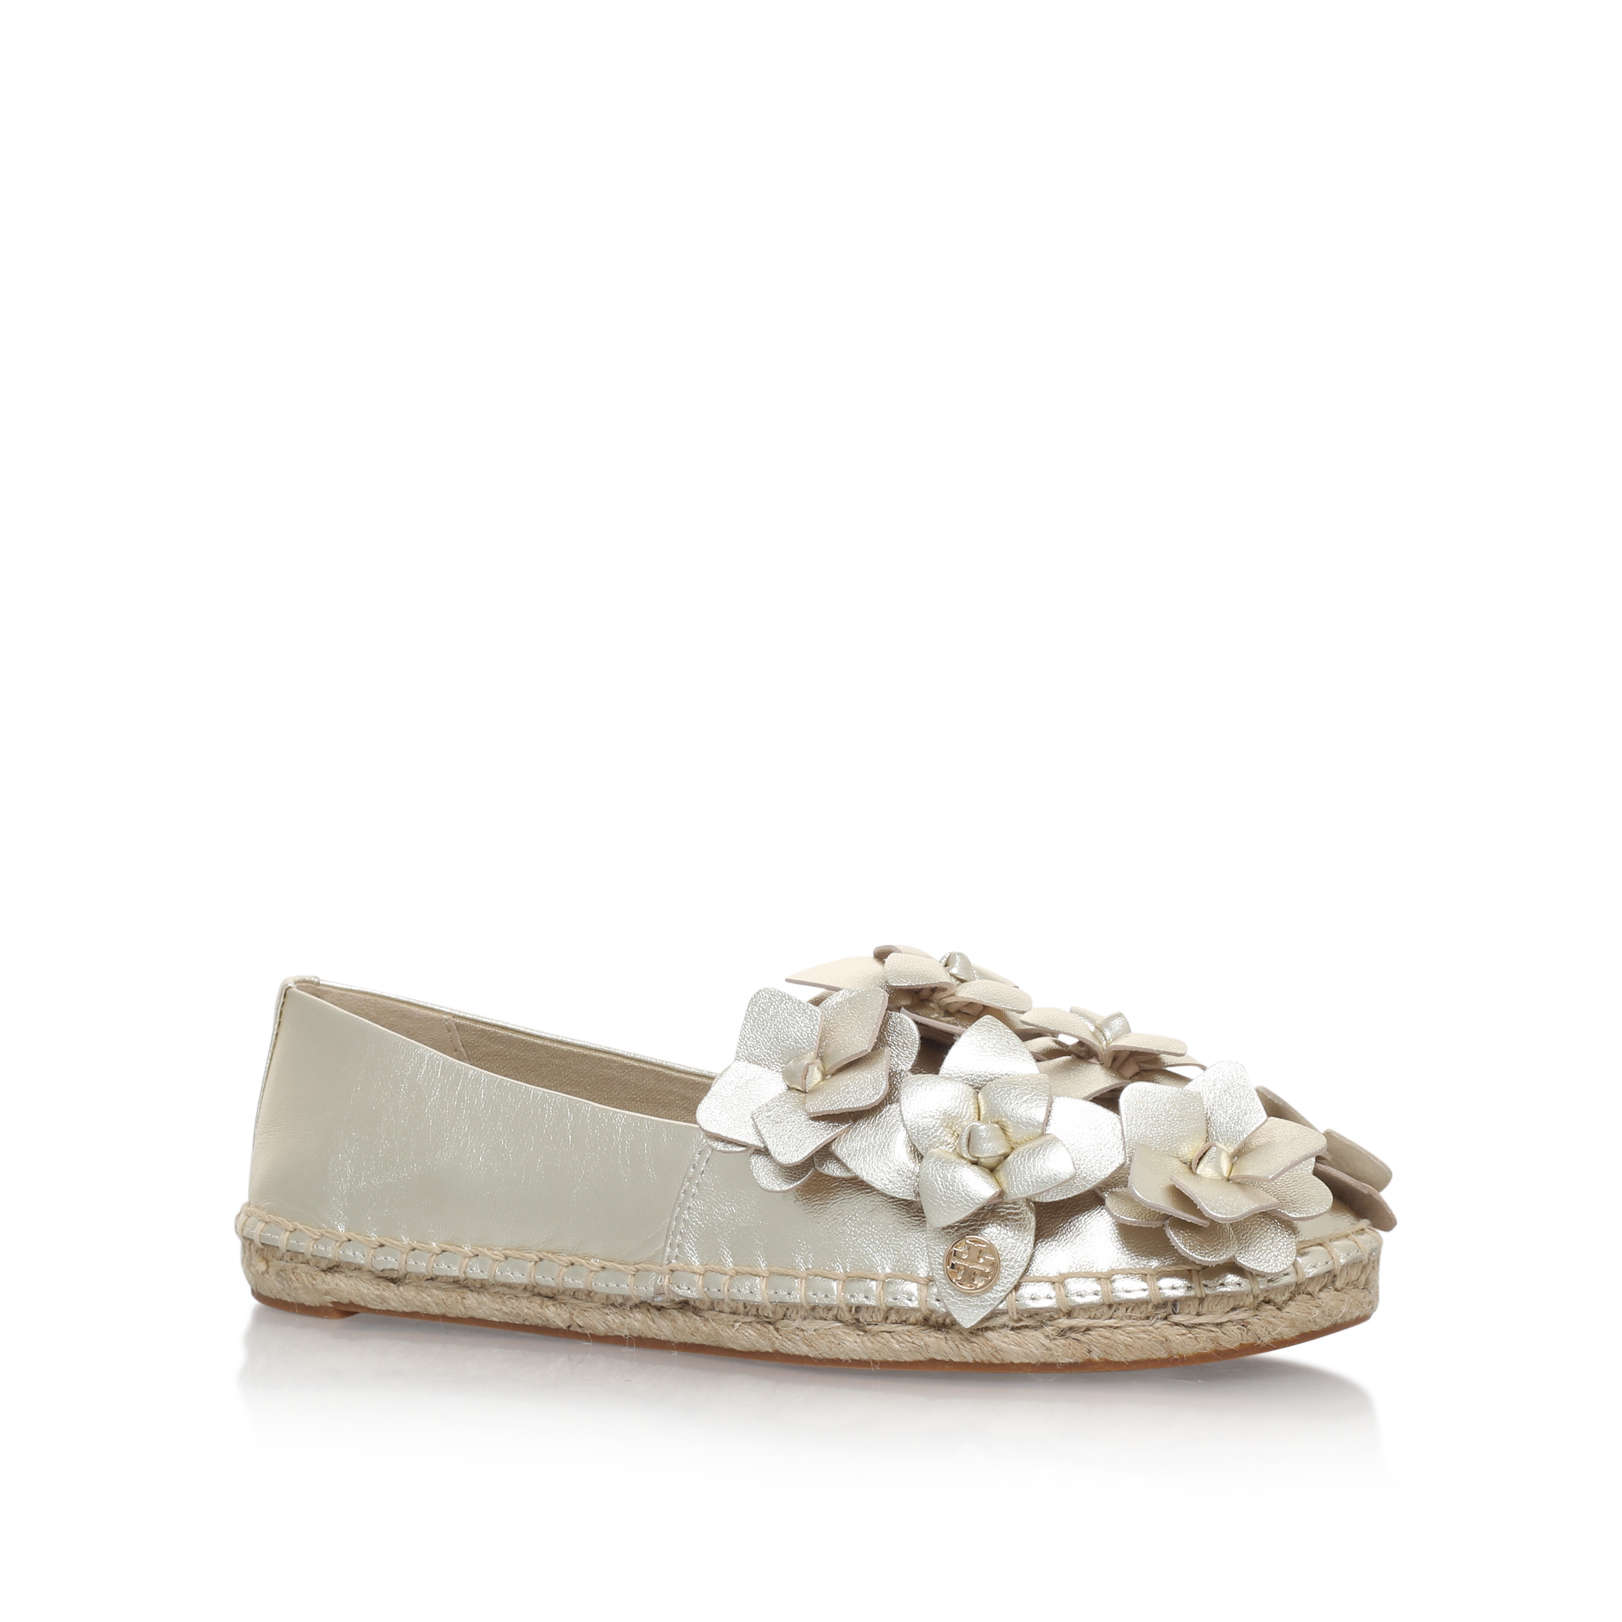 0c8330afca6e54 BLOSSOM ESPADRILLE  Tory Burch Blossom Espadrille Gold Leather Sandal  by  TORY BURCH